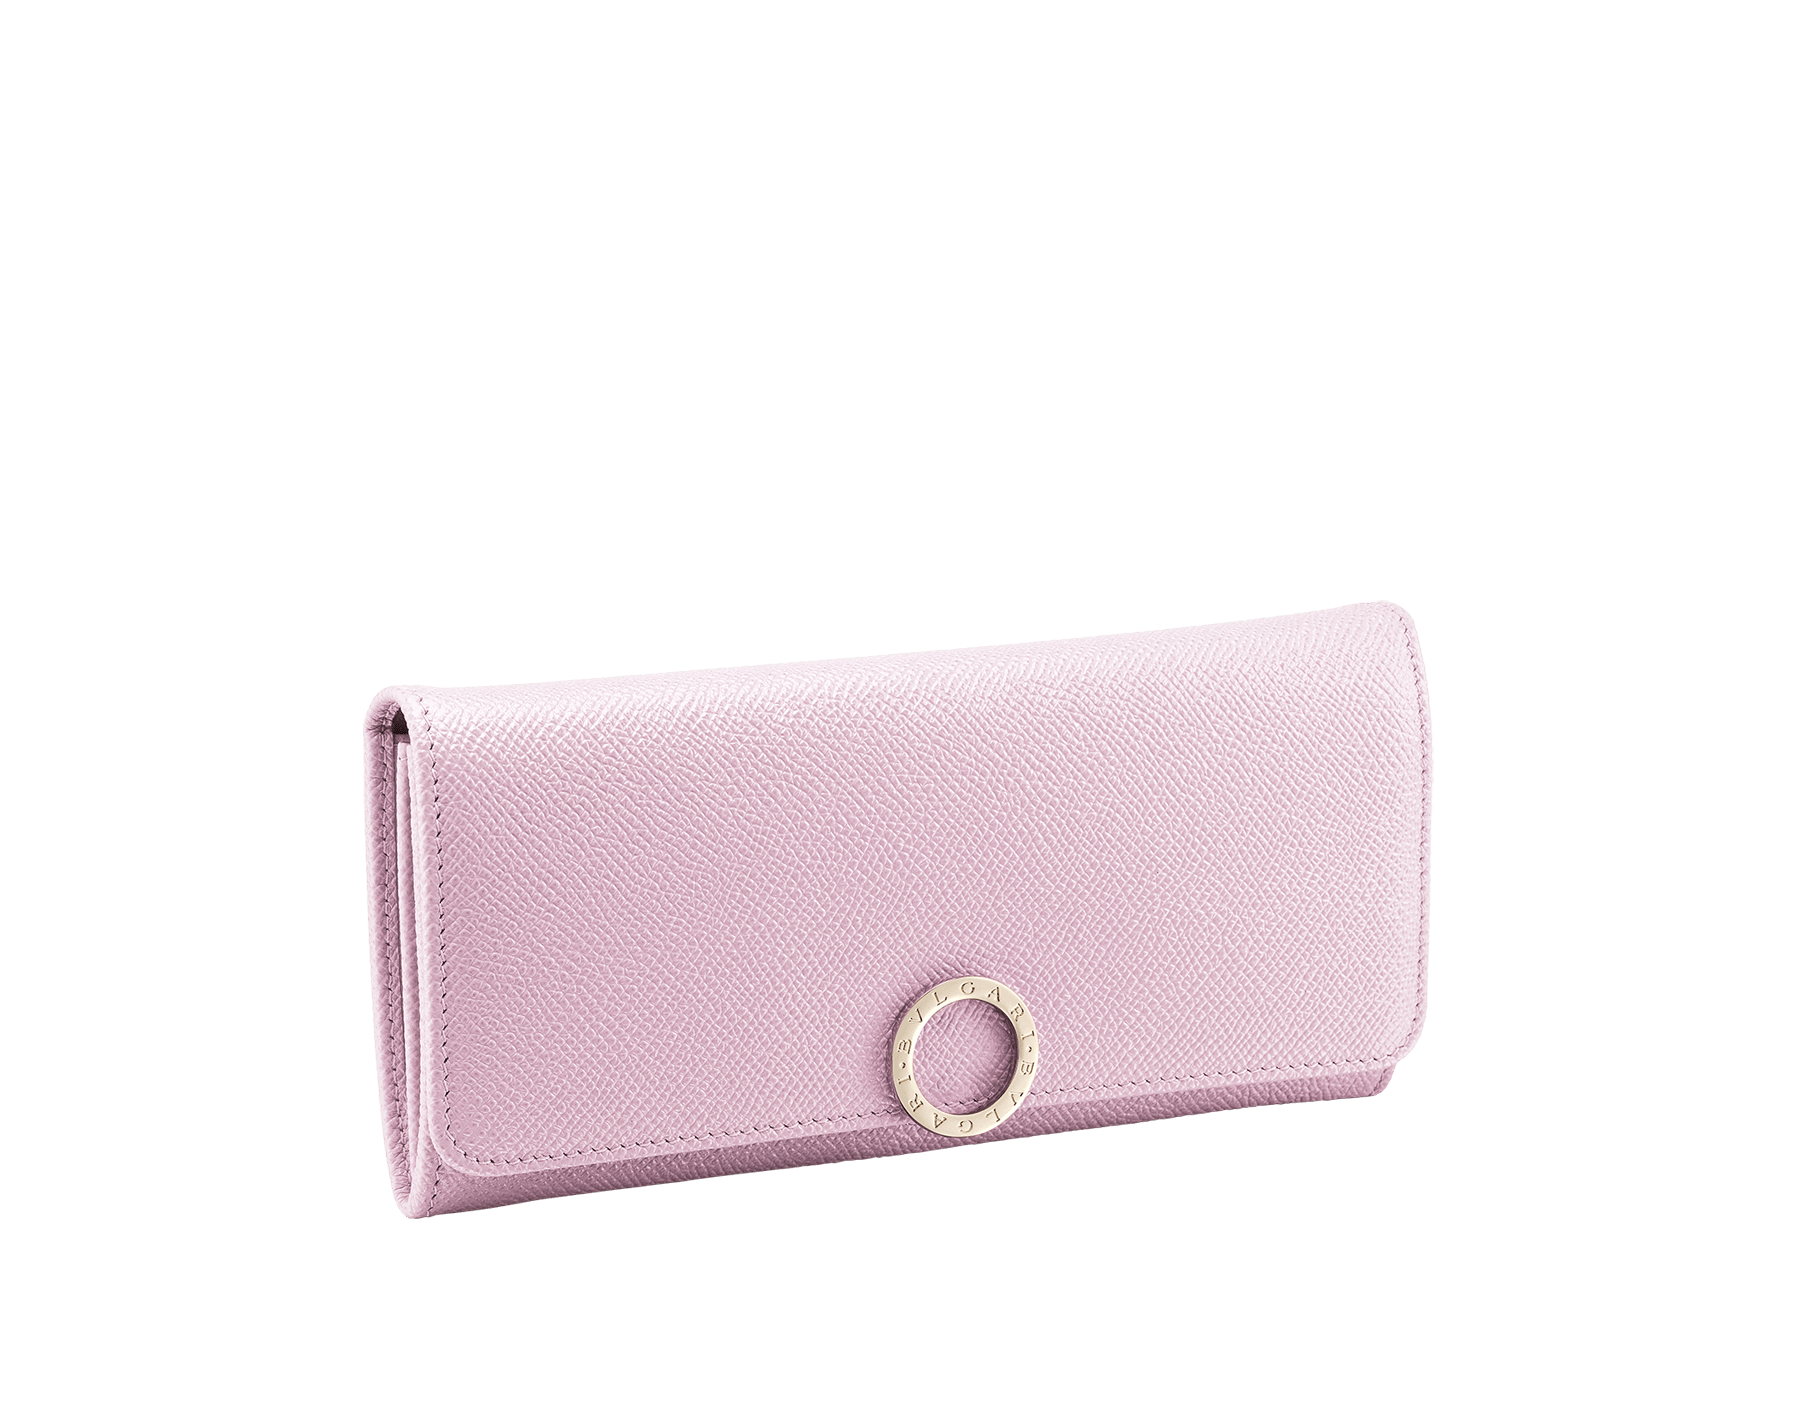 BVLGARI BVLGARI wallet pochette in rosa di francia grain calf leather and flamingo quartz nappa leather. Iconic logo clip closure in light gold plated brass. 579-WLT-SLI-POC-CLc image 1